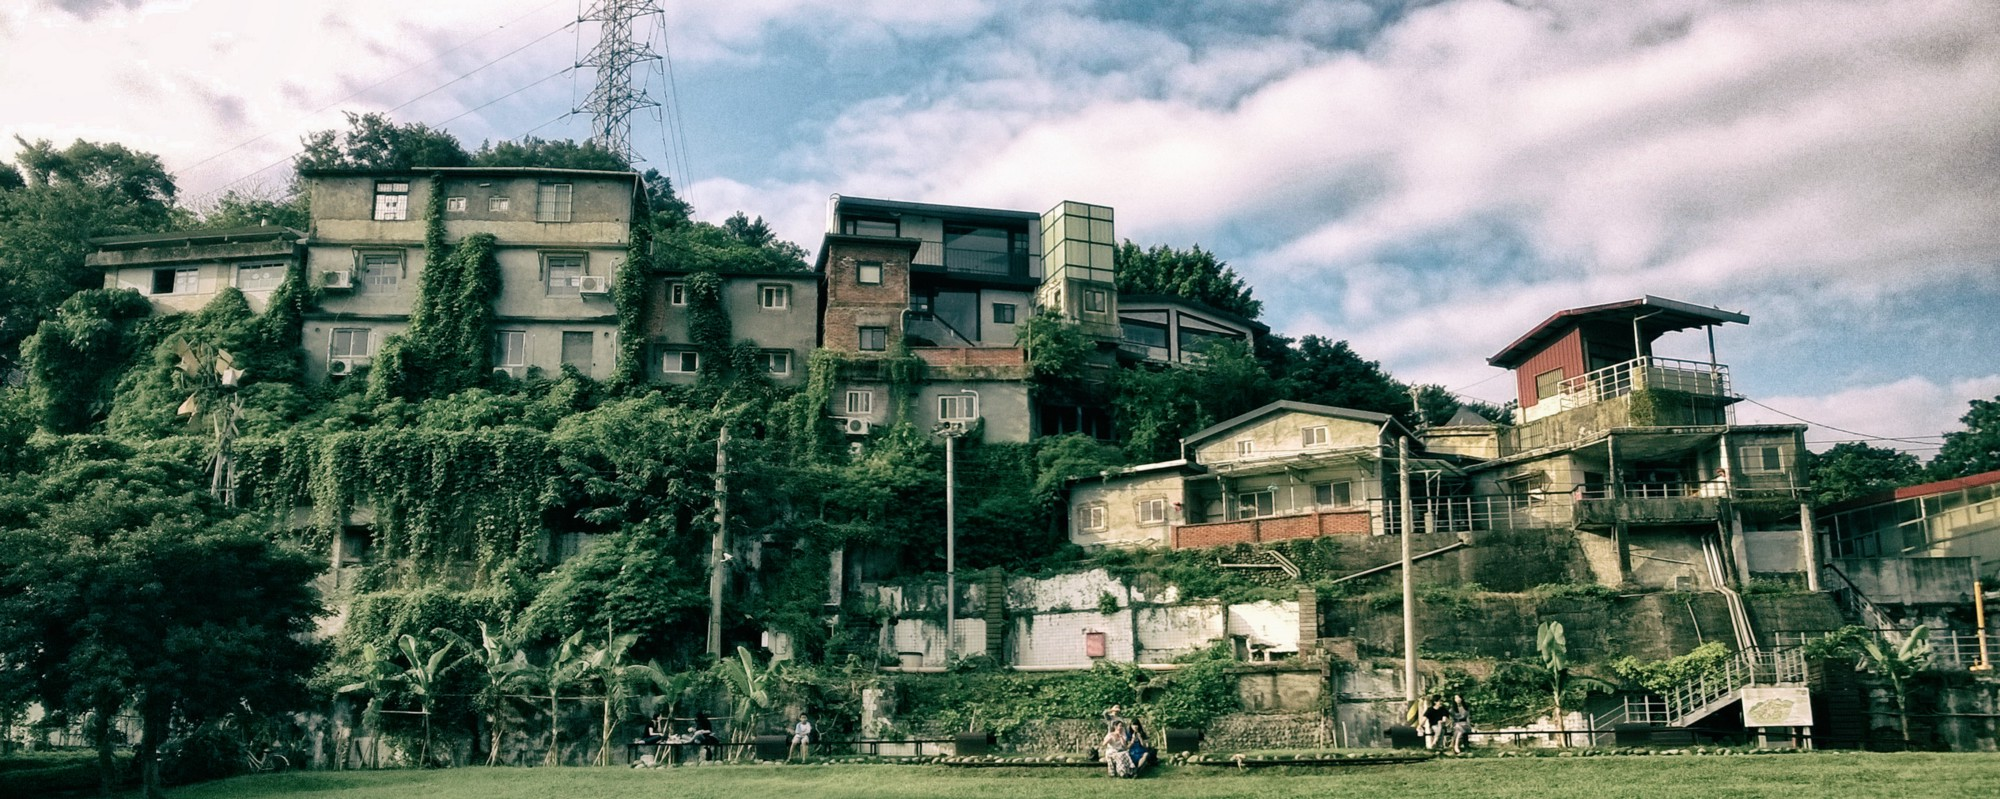 The City of the Future Looks Like a Former Military Bunker in Taipei